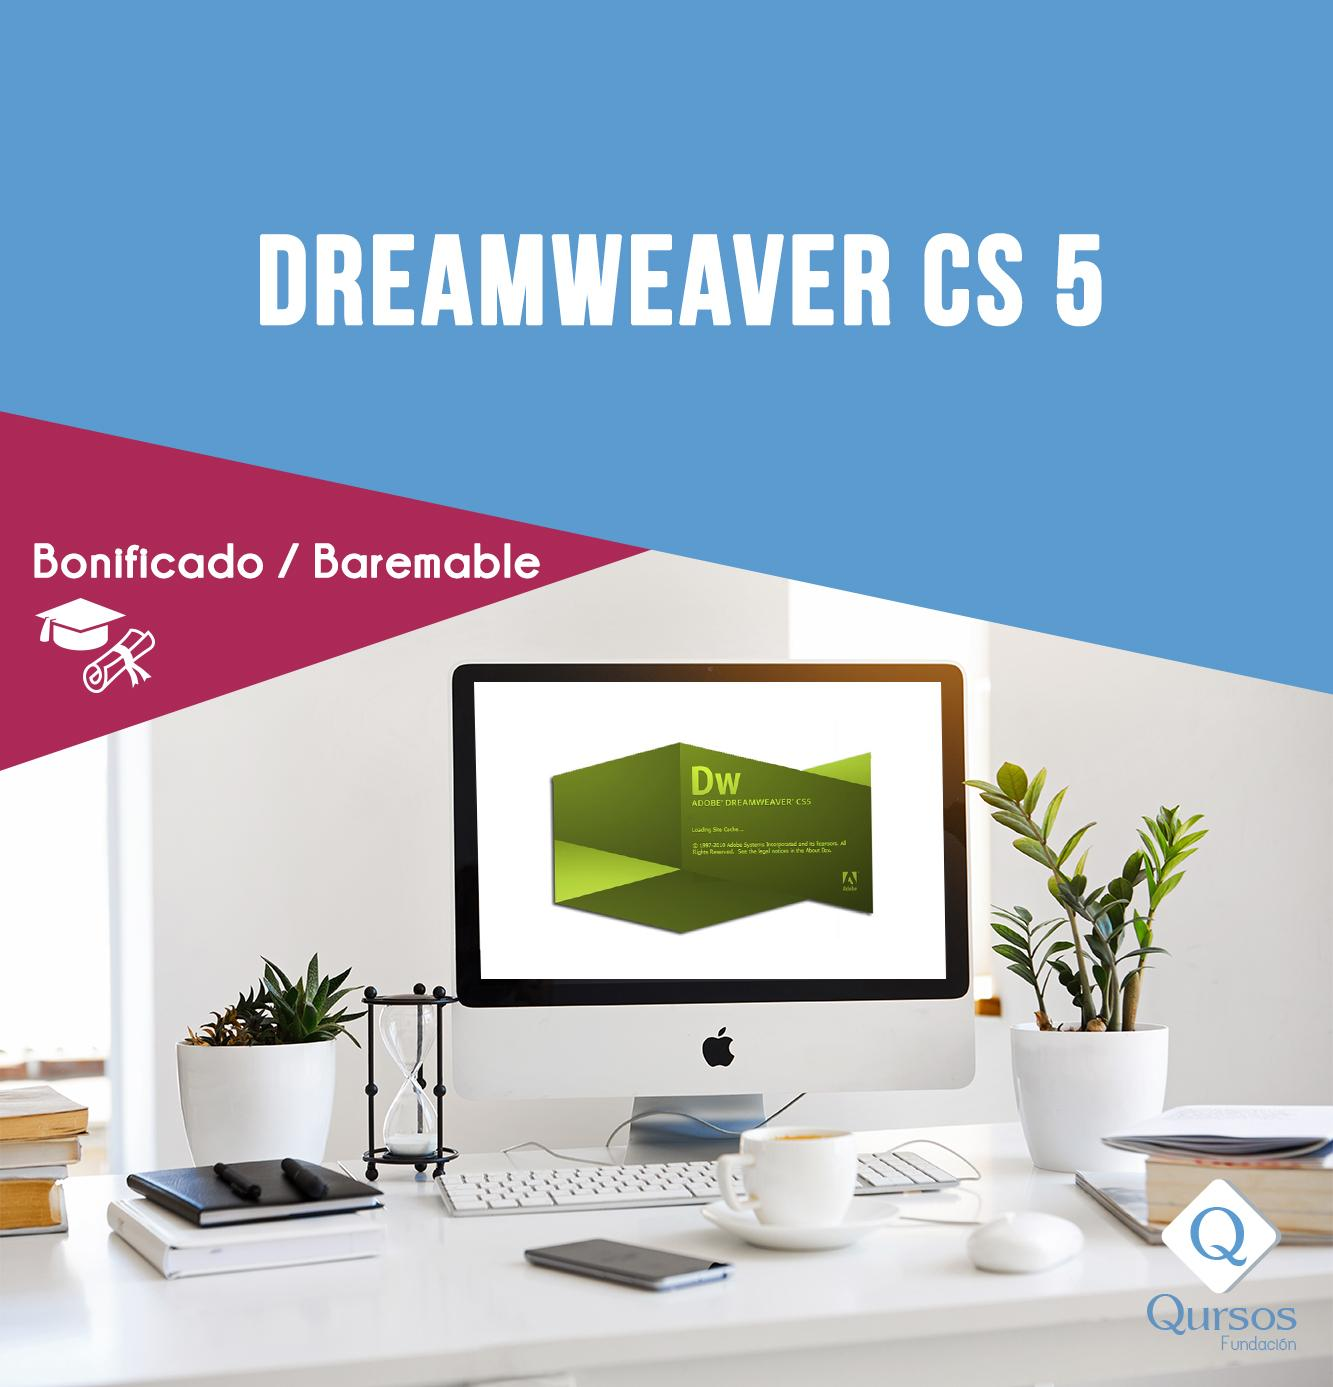 Dreamweaver CS 5 - 40 Horas